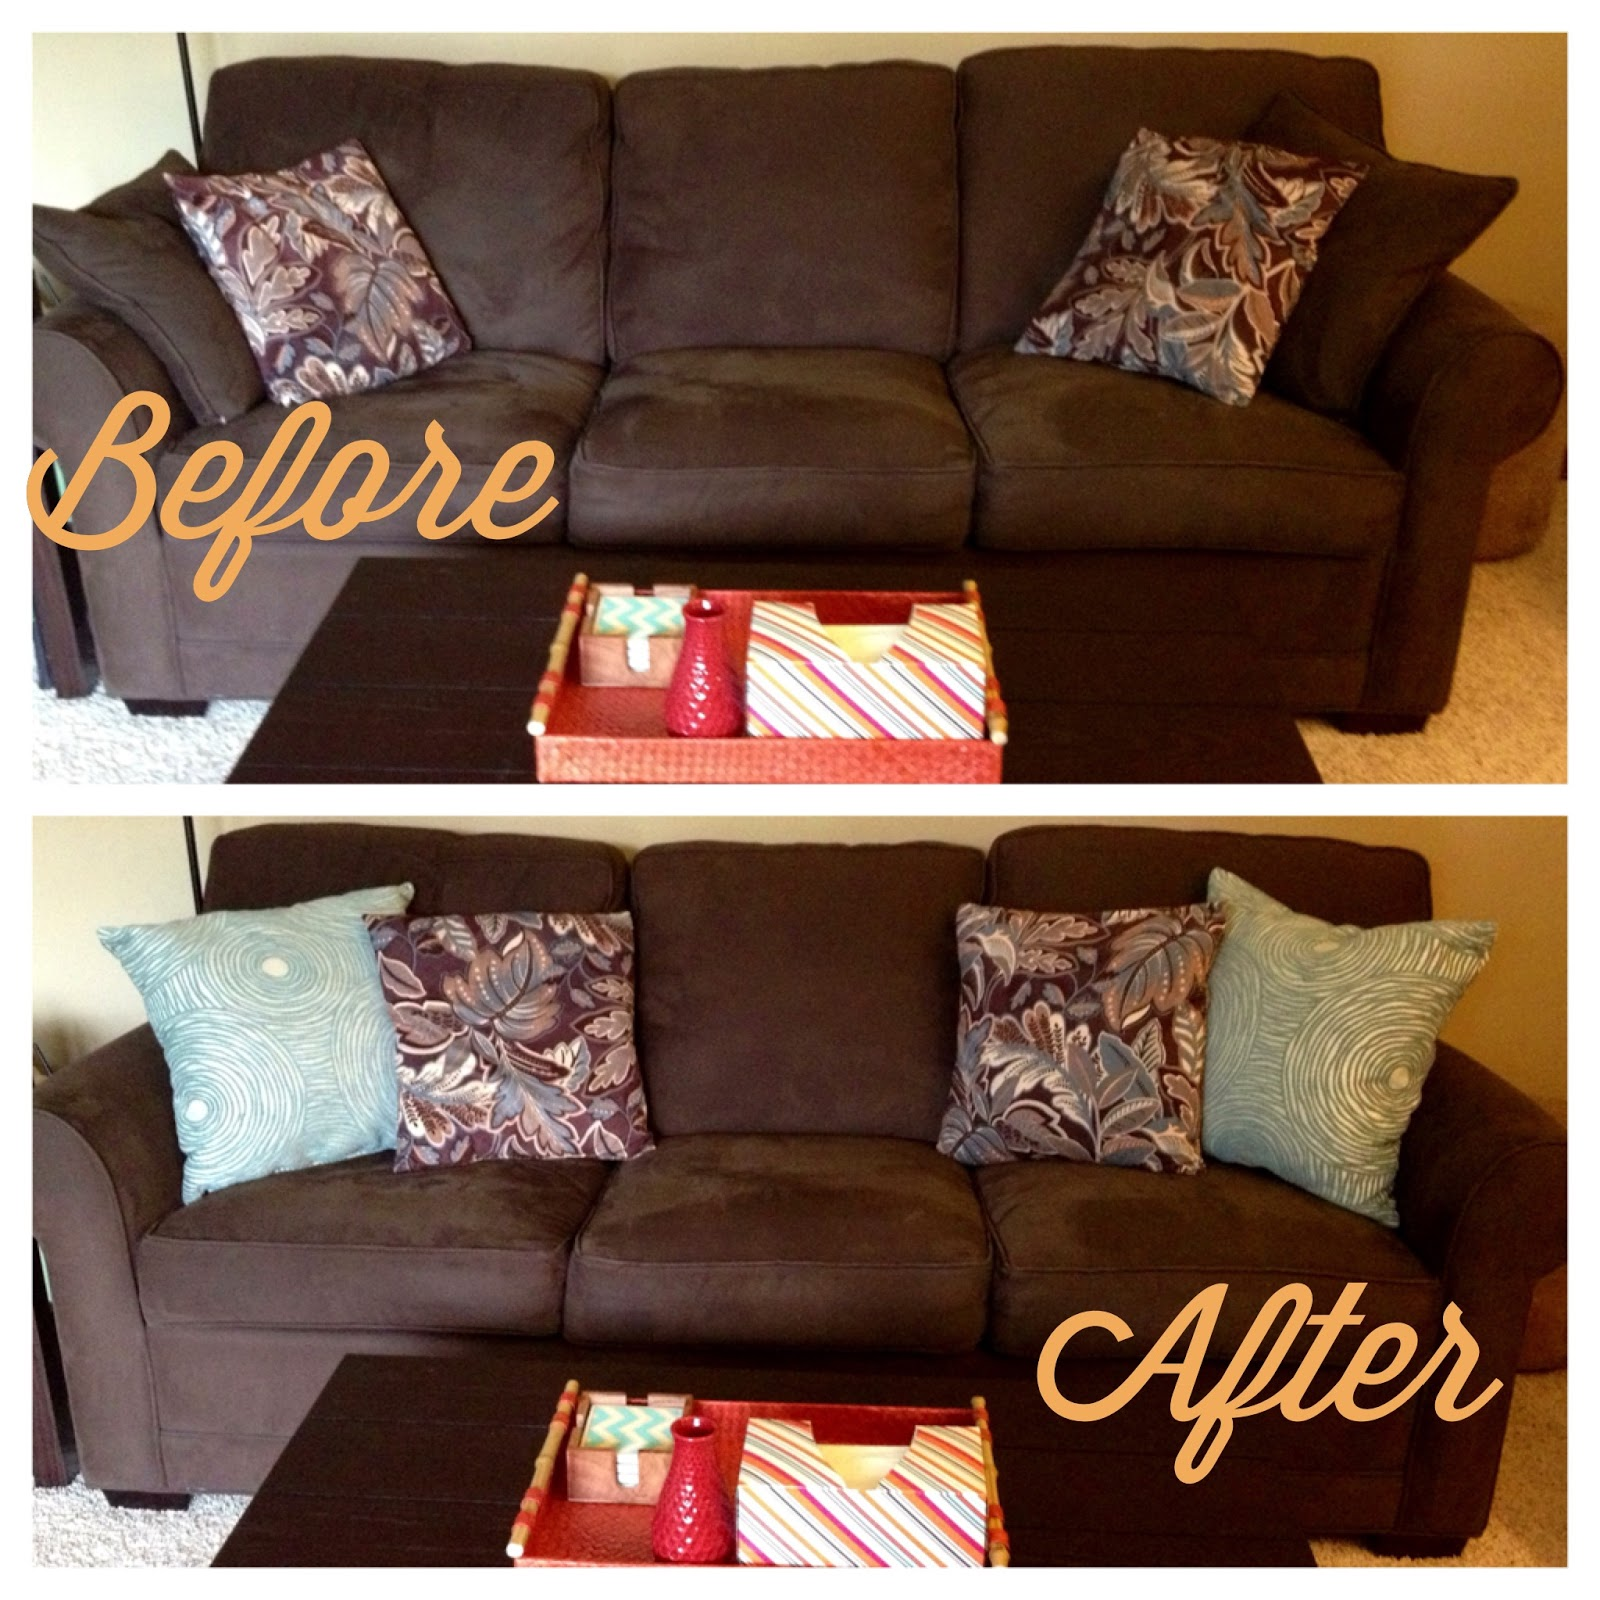 rugs to go with chocolate brown sofa cheers replacement parts my own twist on things little changes